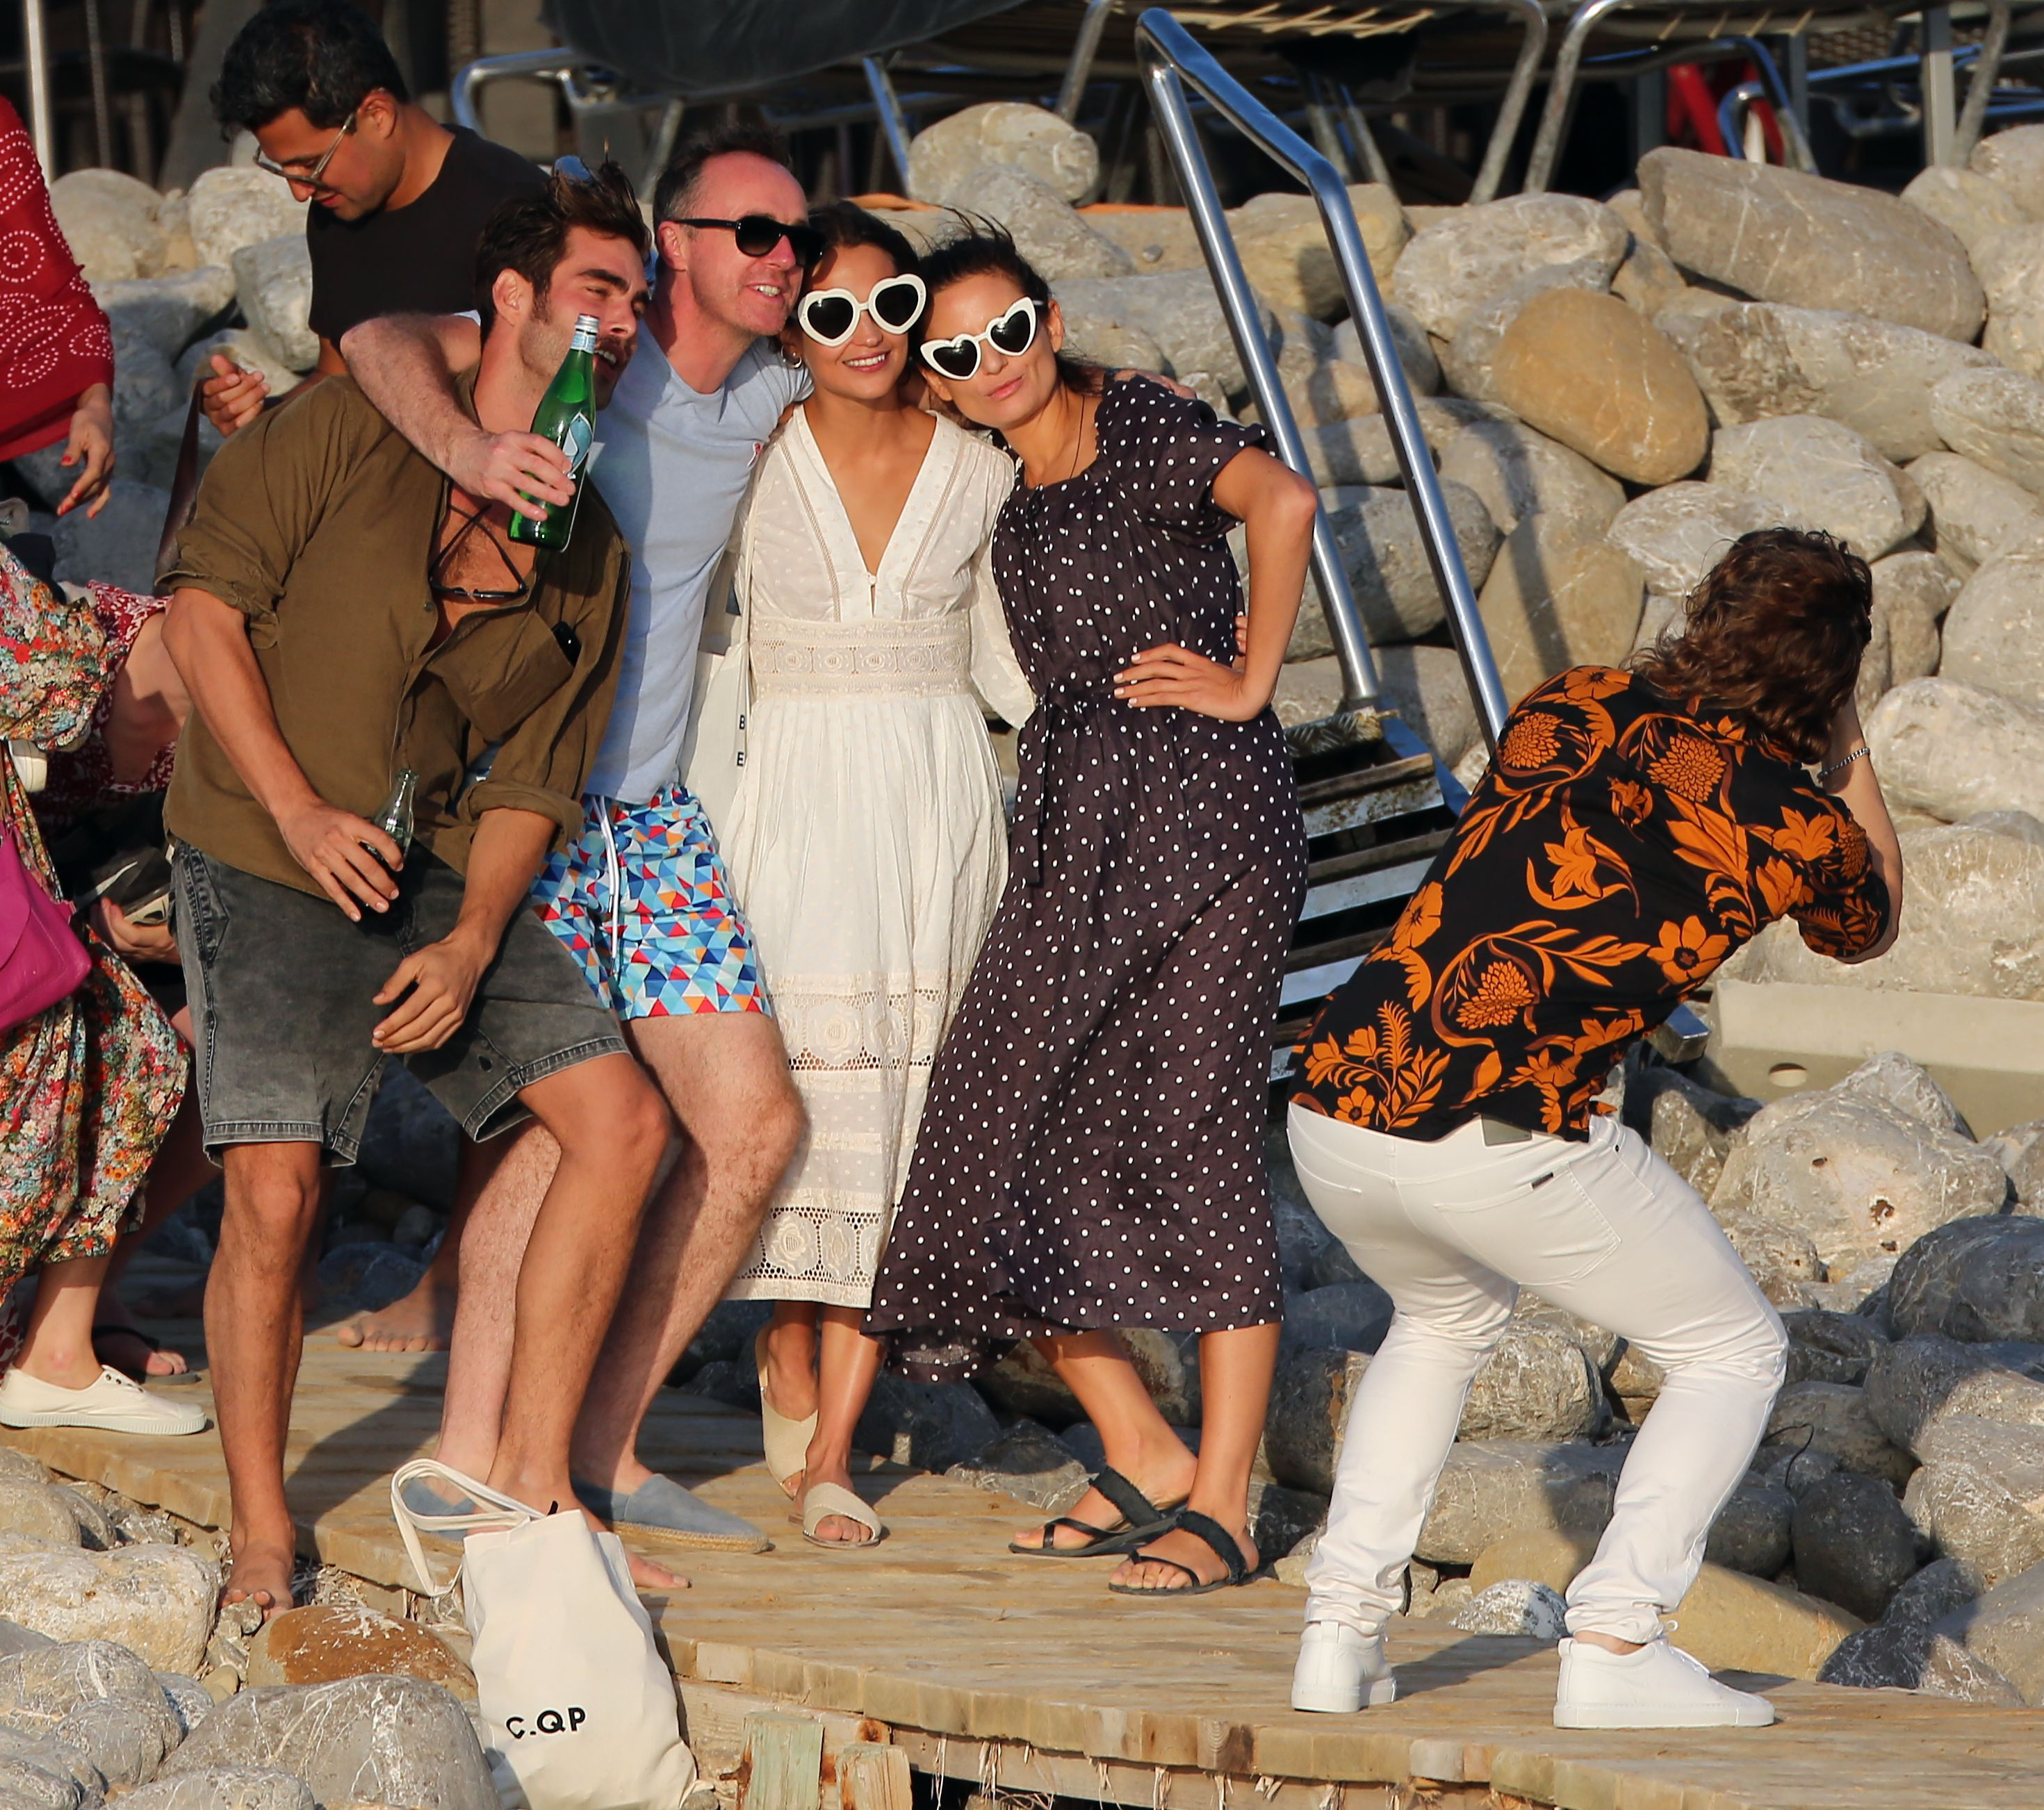 Michael Fassbender and Alicia Vikander Took a Vow in Ibiza